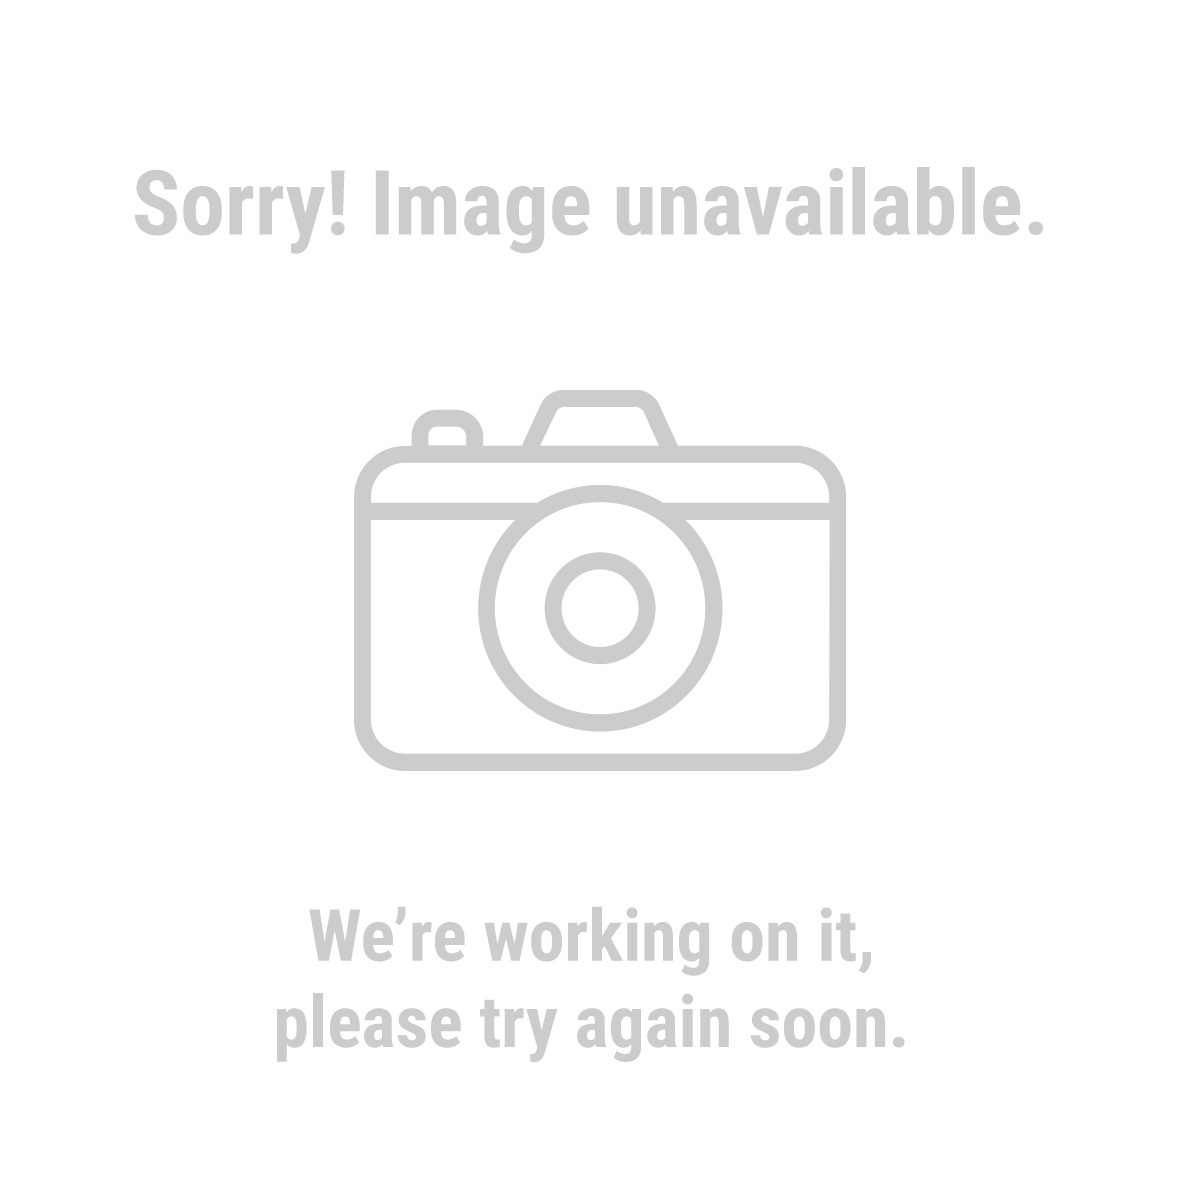 HARDY 68510 Pack of 50 Black Nitrile Gloves, Size Medium